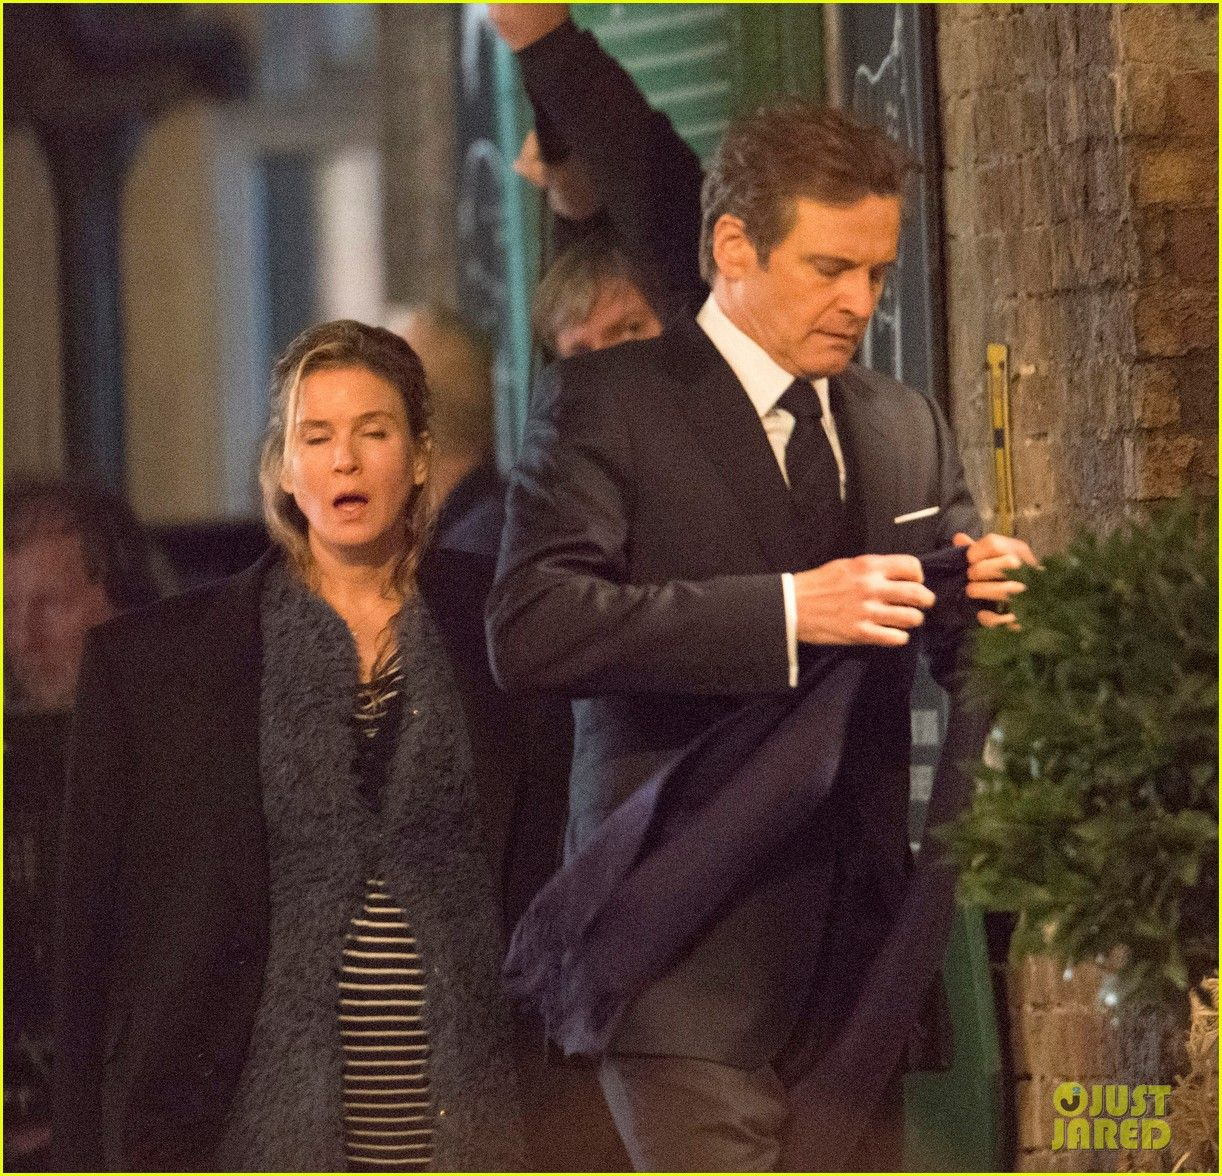 Renee Zellweger & Colin Firth filming scenes on the set of Bridget Jones's Baby in London, England on Tuesday (October 13, 2015) #bridgetjonesdiaryandbaby